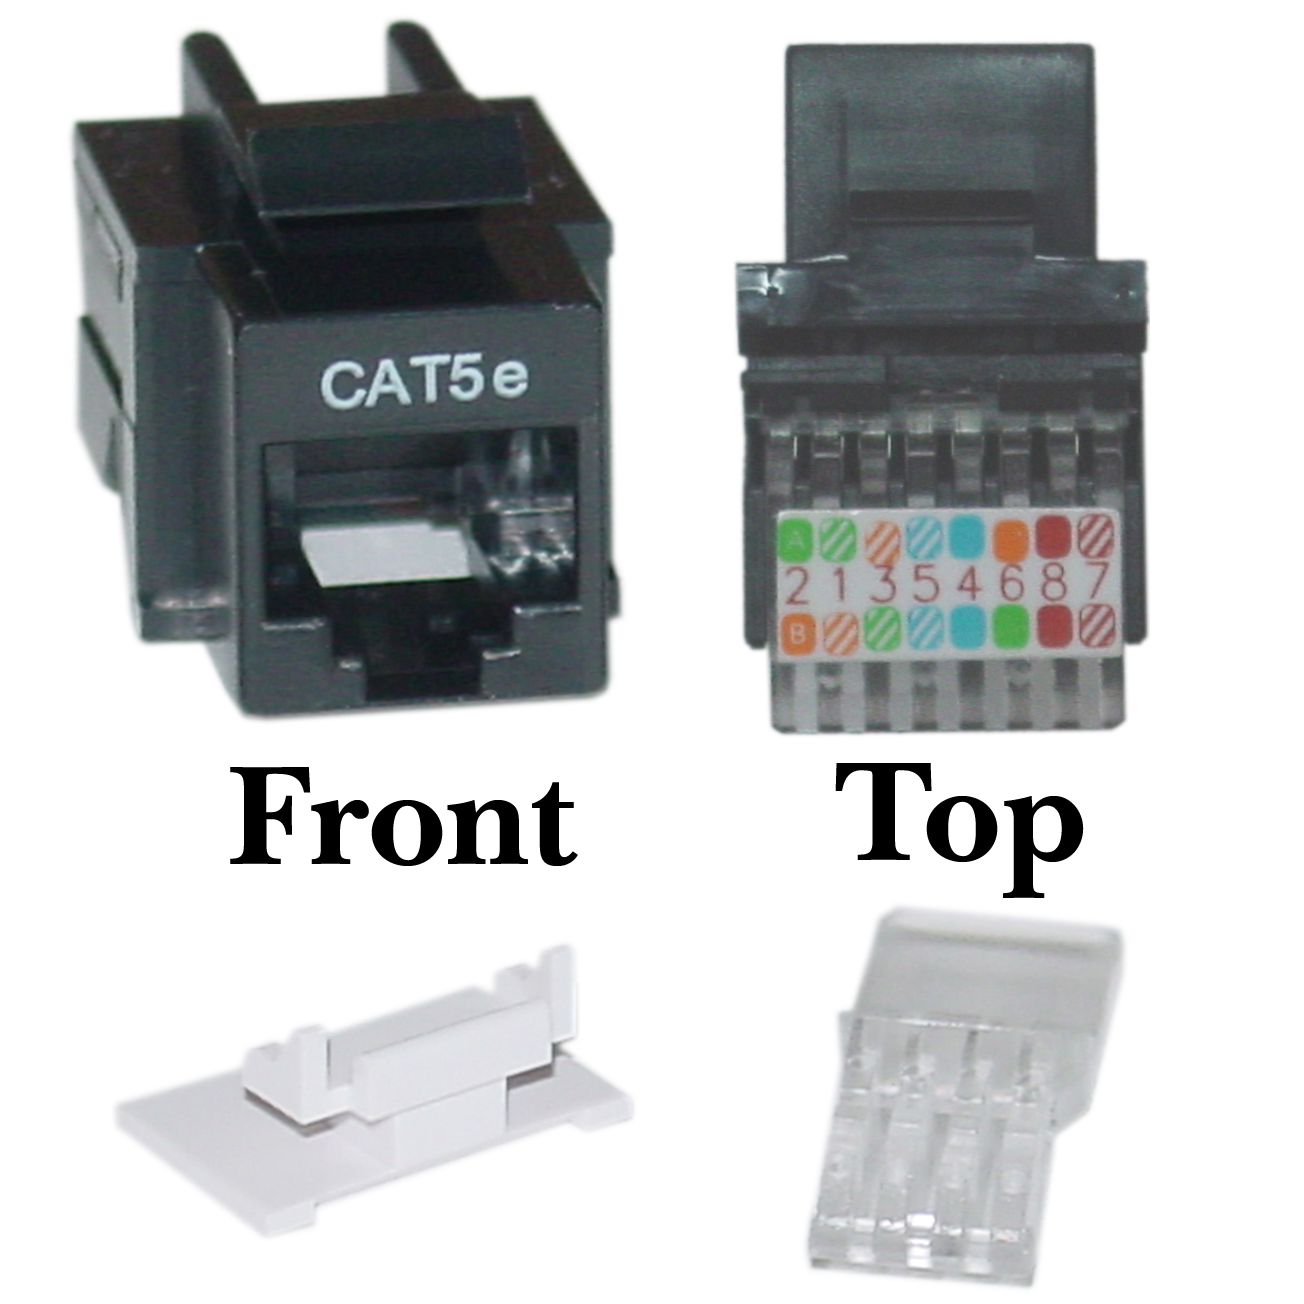 hight resolution of cat5e numbering